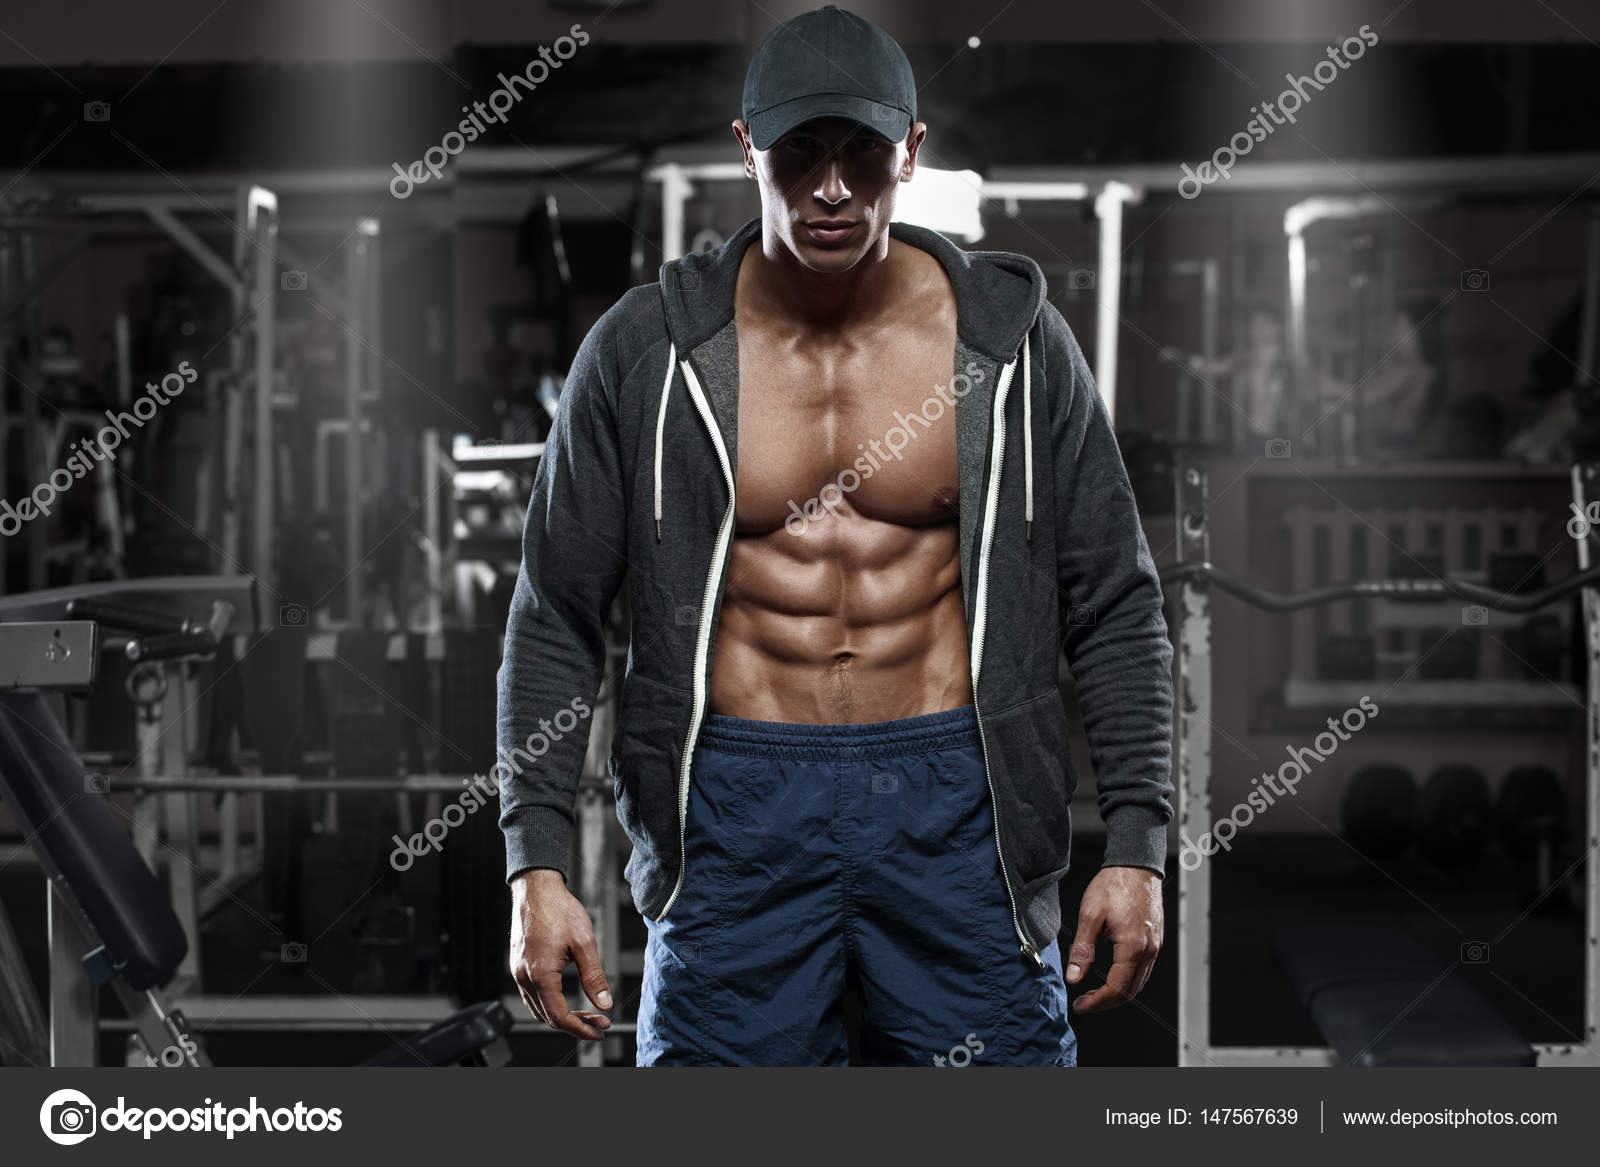 Muscular Man With Open Jacket Revealing Chest And Abs In Gym Workout Stock Photo